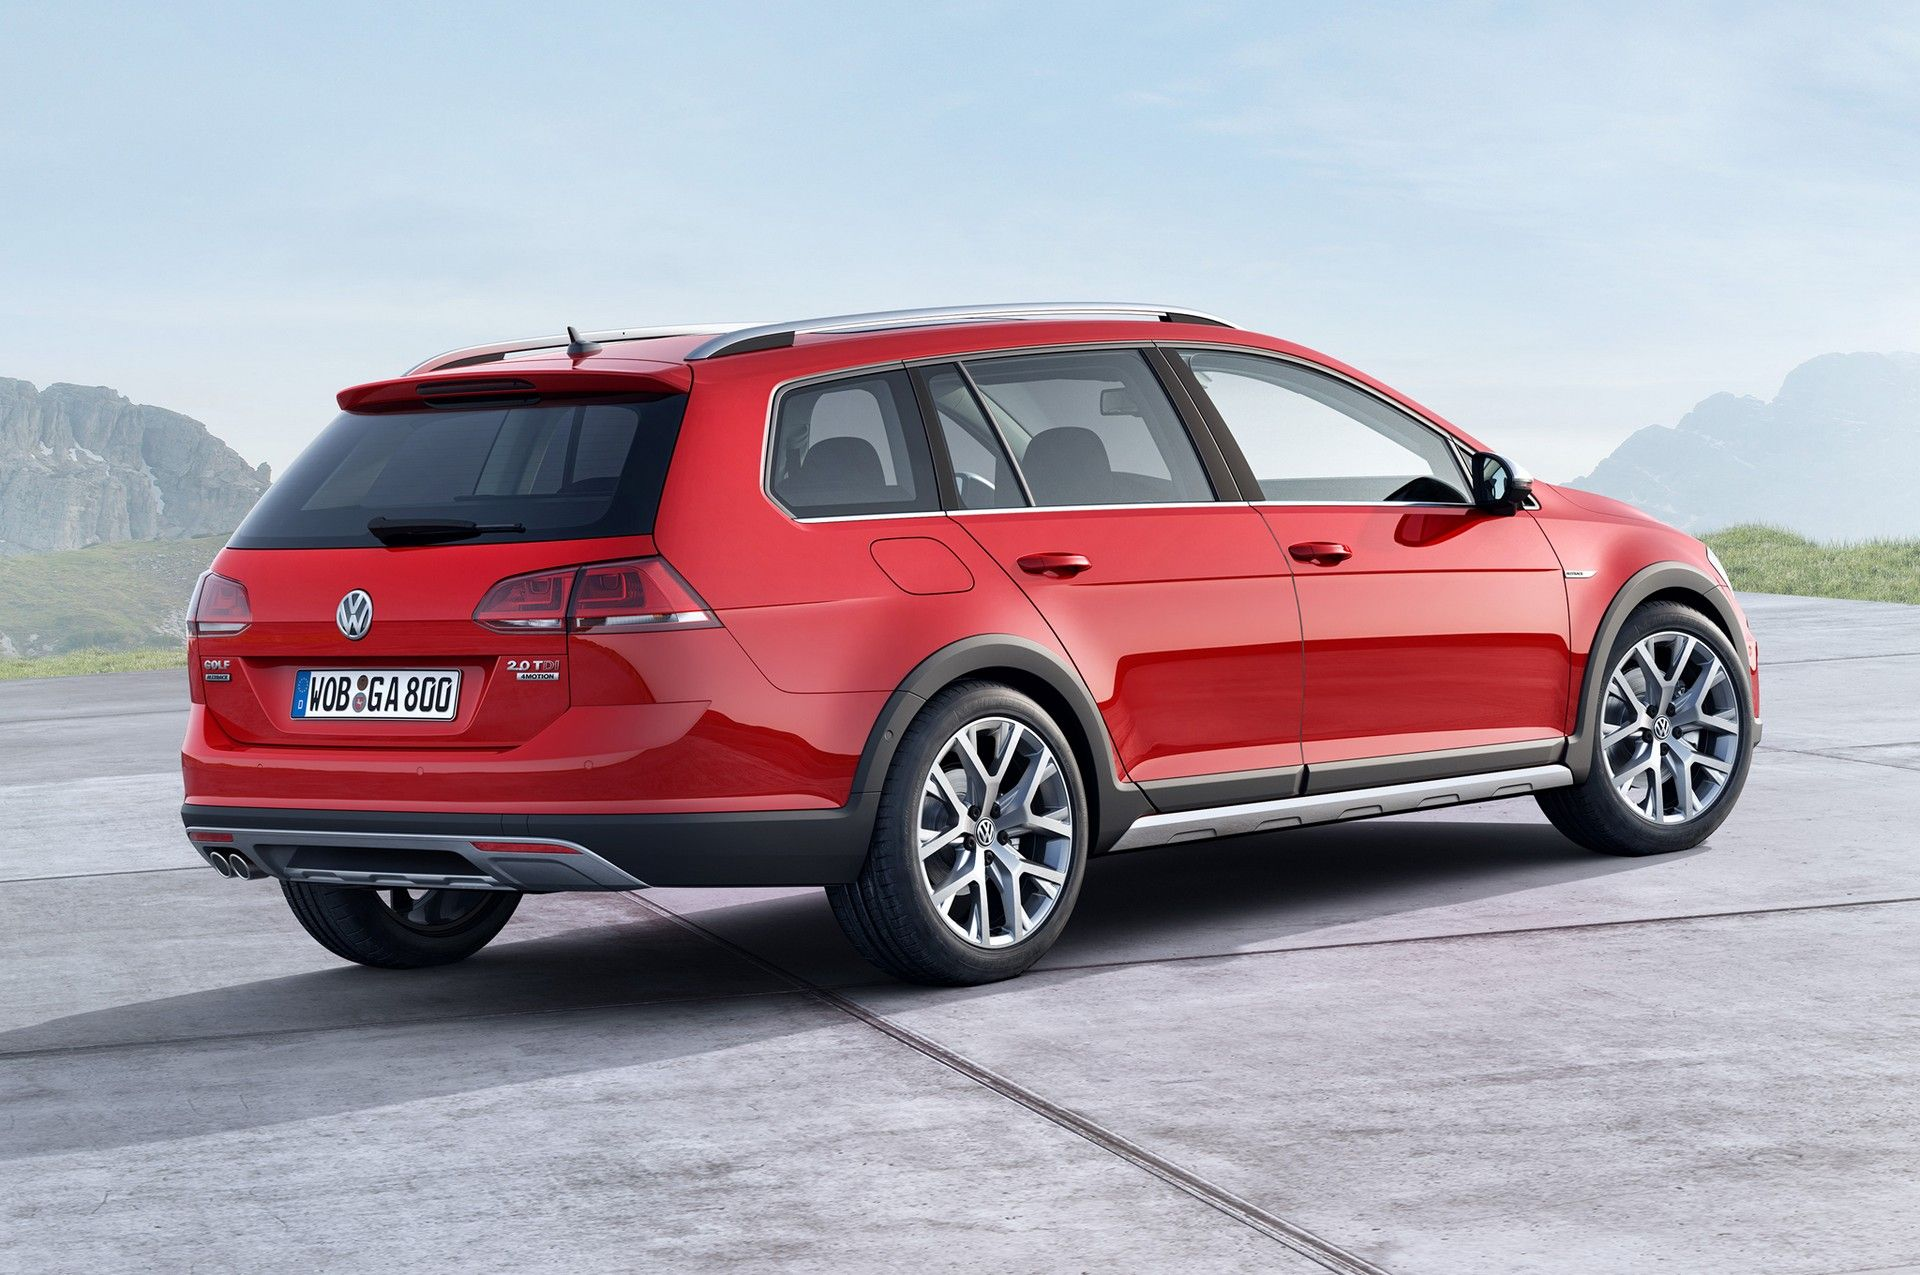 44 The 2020 Vw Golf Sportwagen Configurations